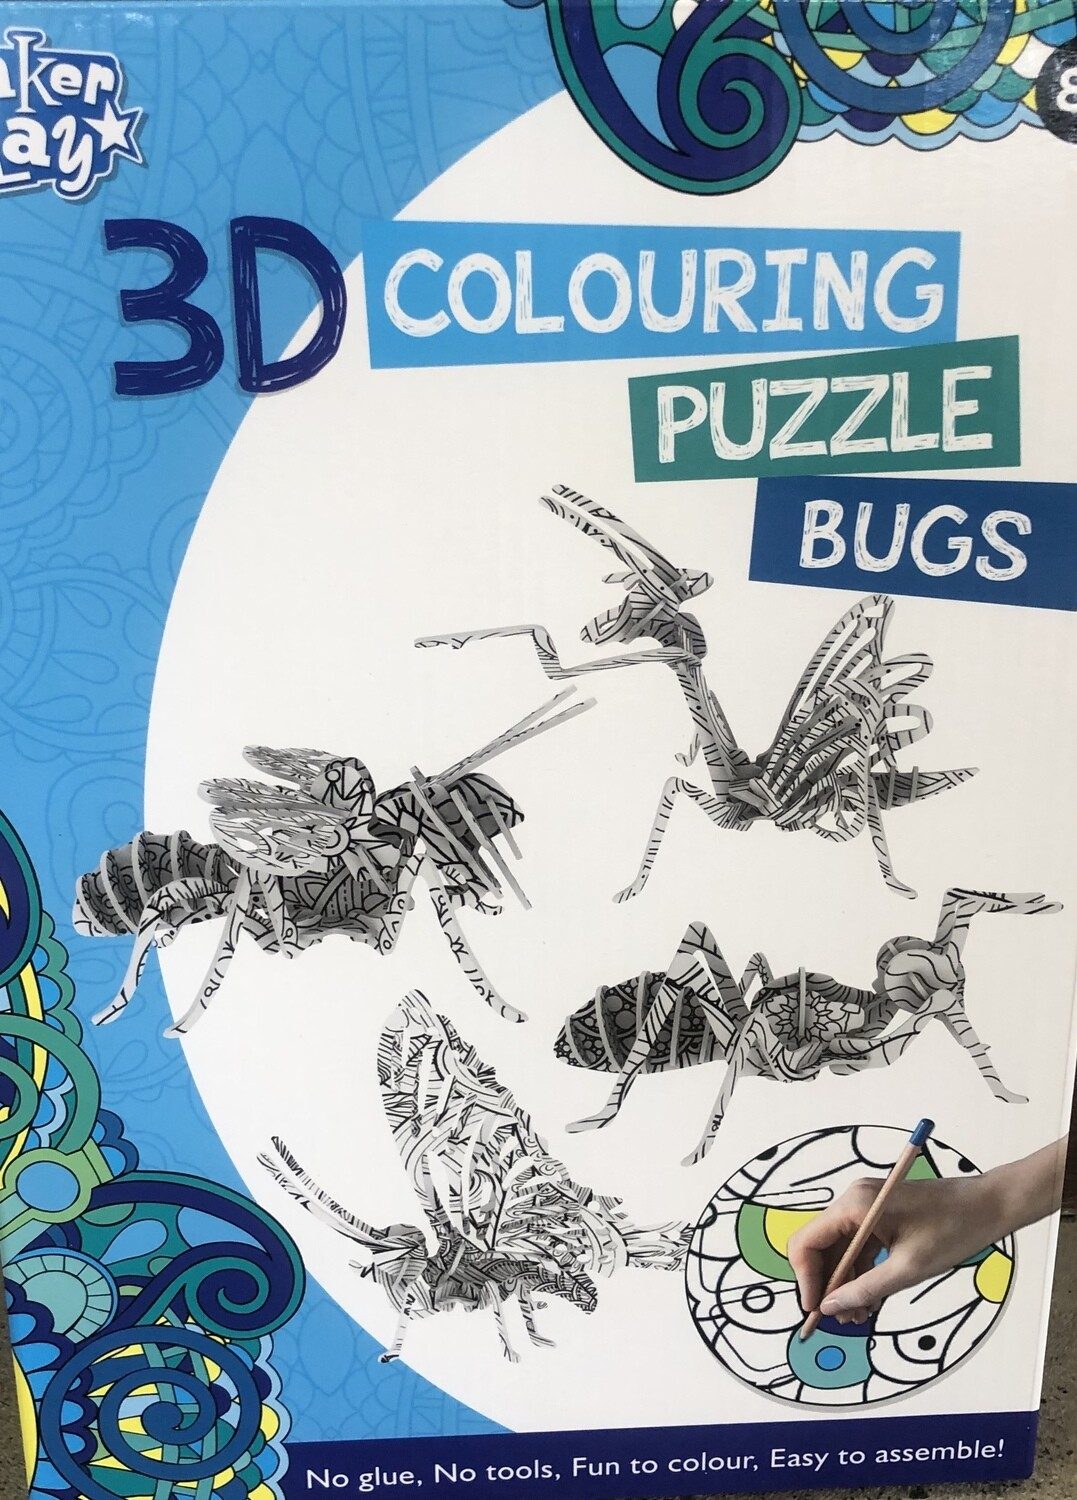 3D Colouring Puzzle Bugs